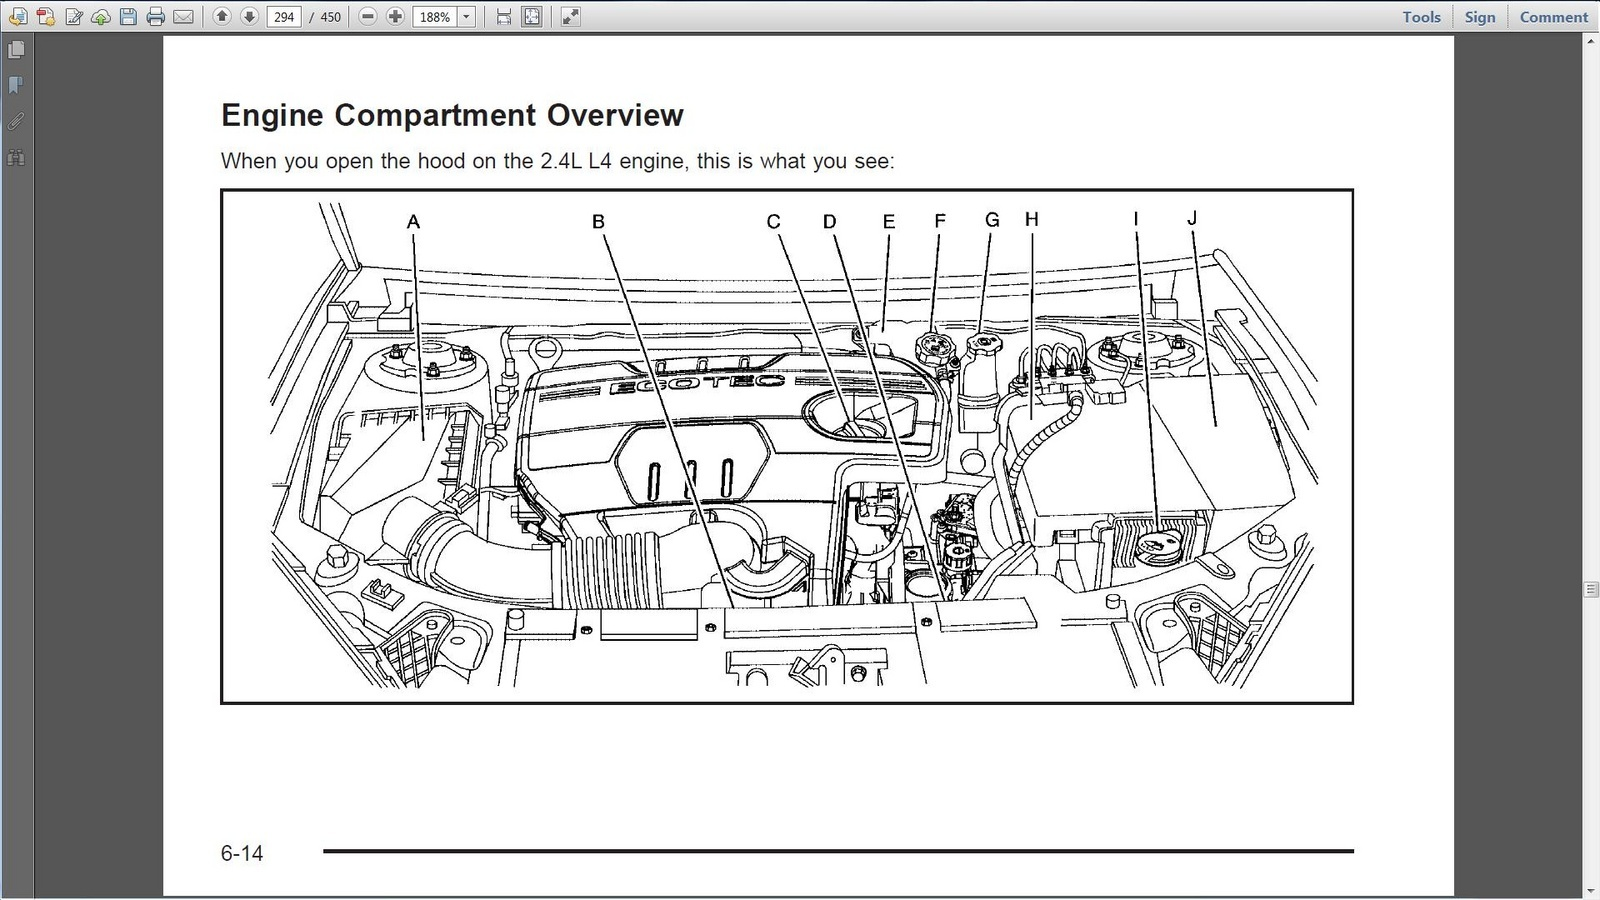 hight resolution of 2000 chevy impala engine diagram wiring diagram used chevy impala 3800 engine diagram